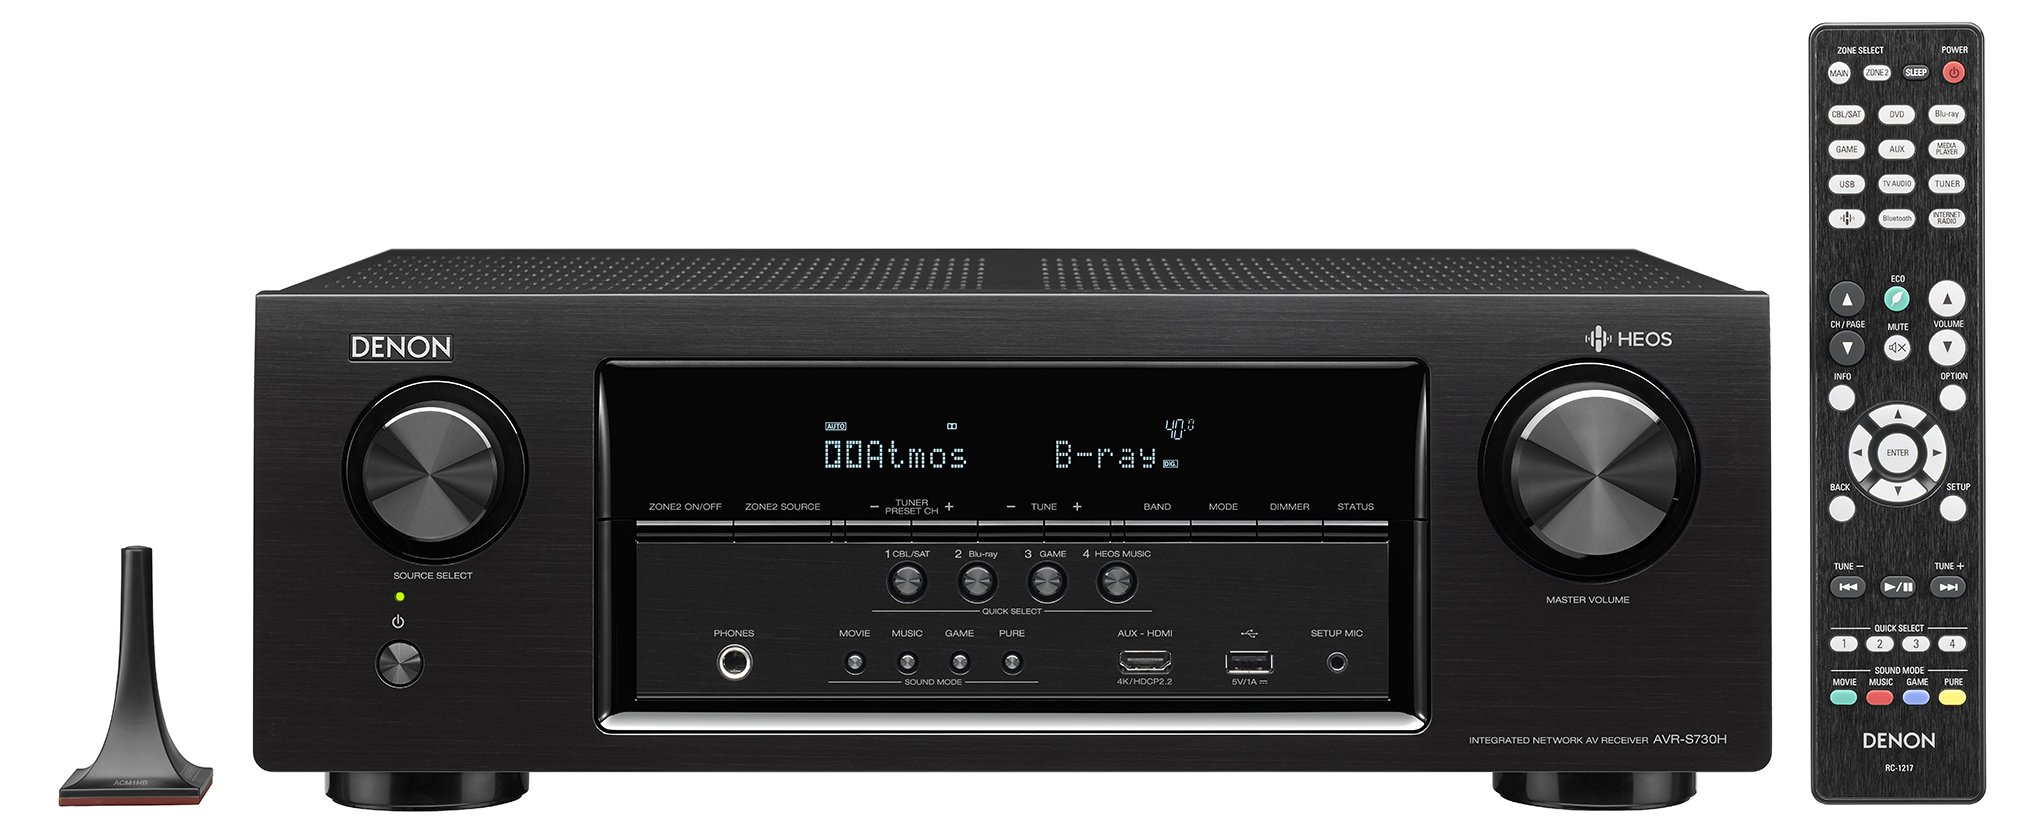 Denon AVRS730H 7.2 Channel AV Receiver with Built-in HEOS wireless technology by Denon